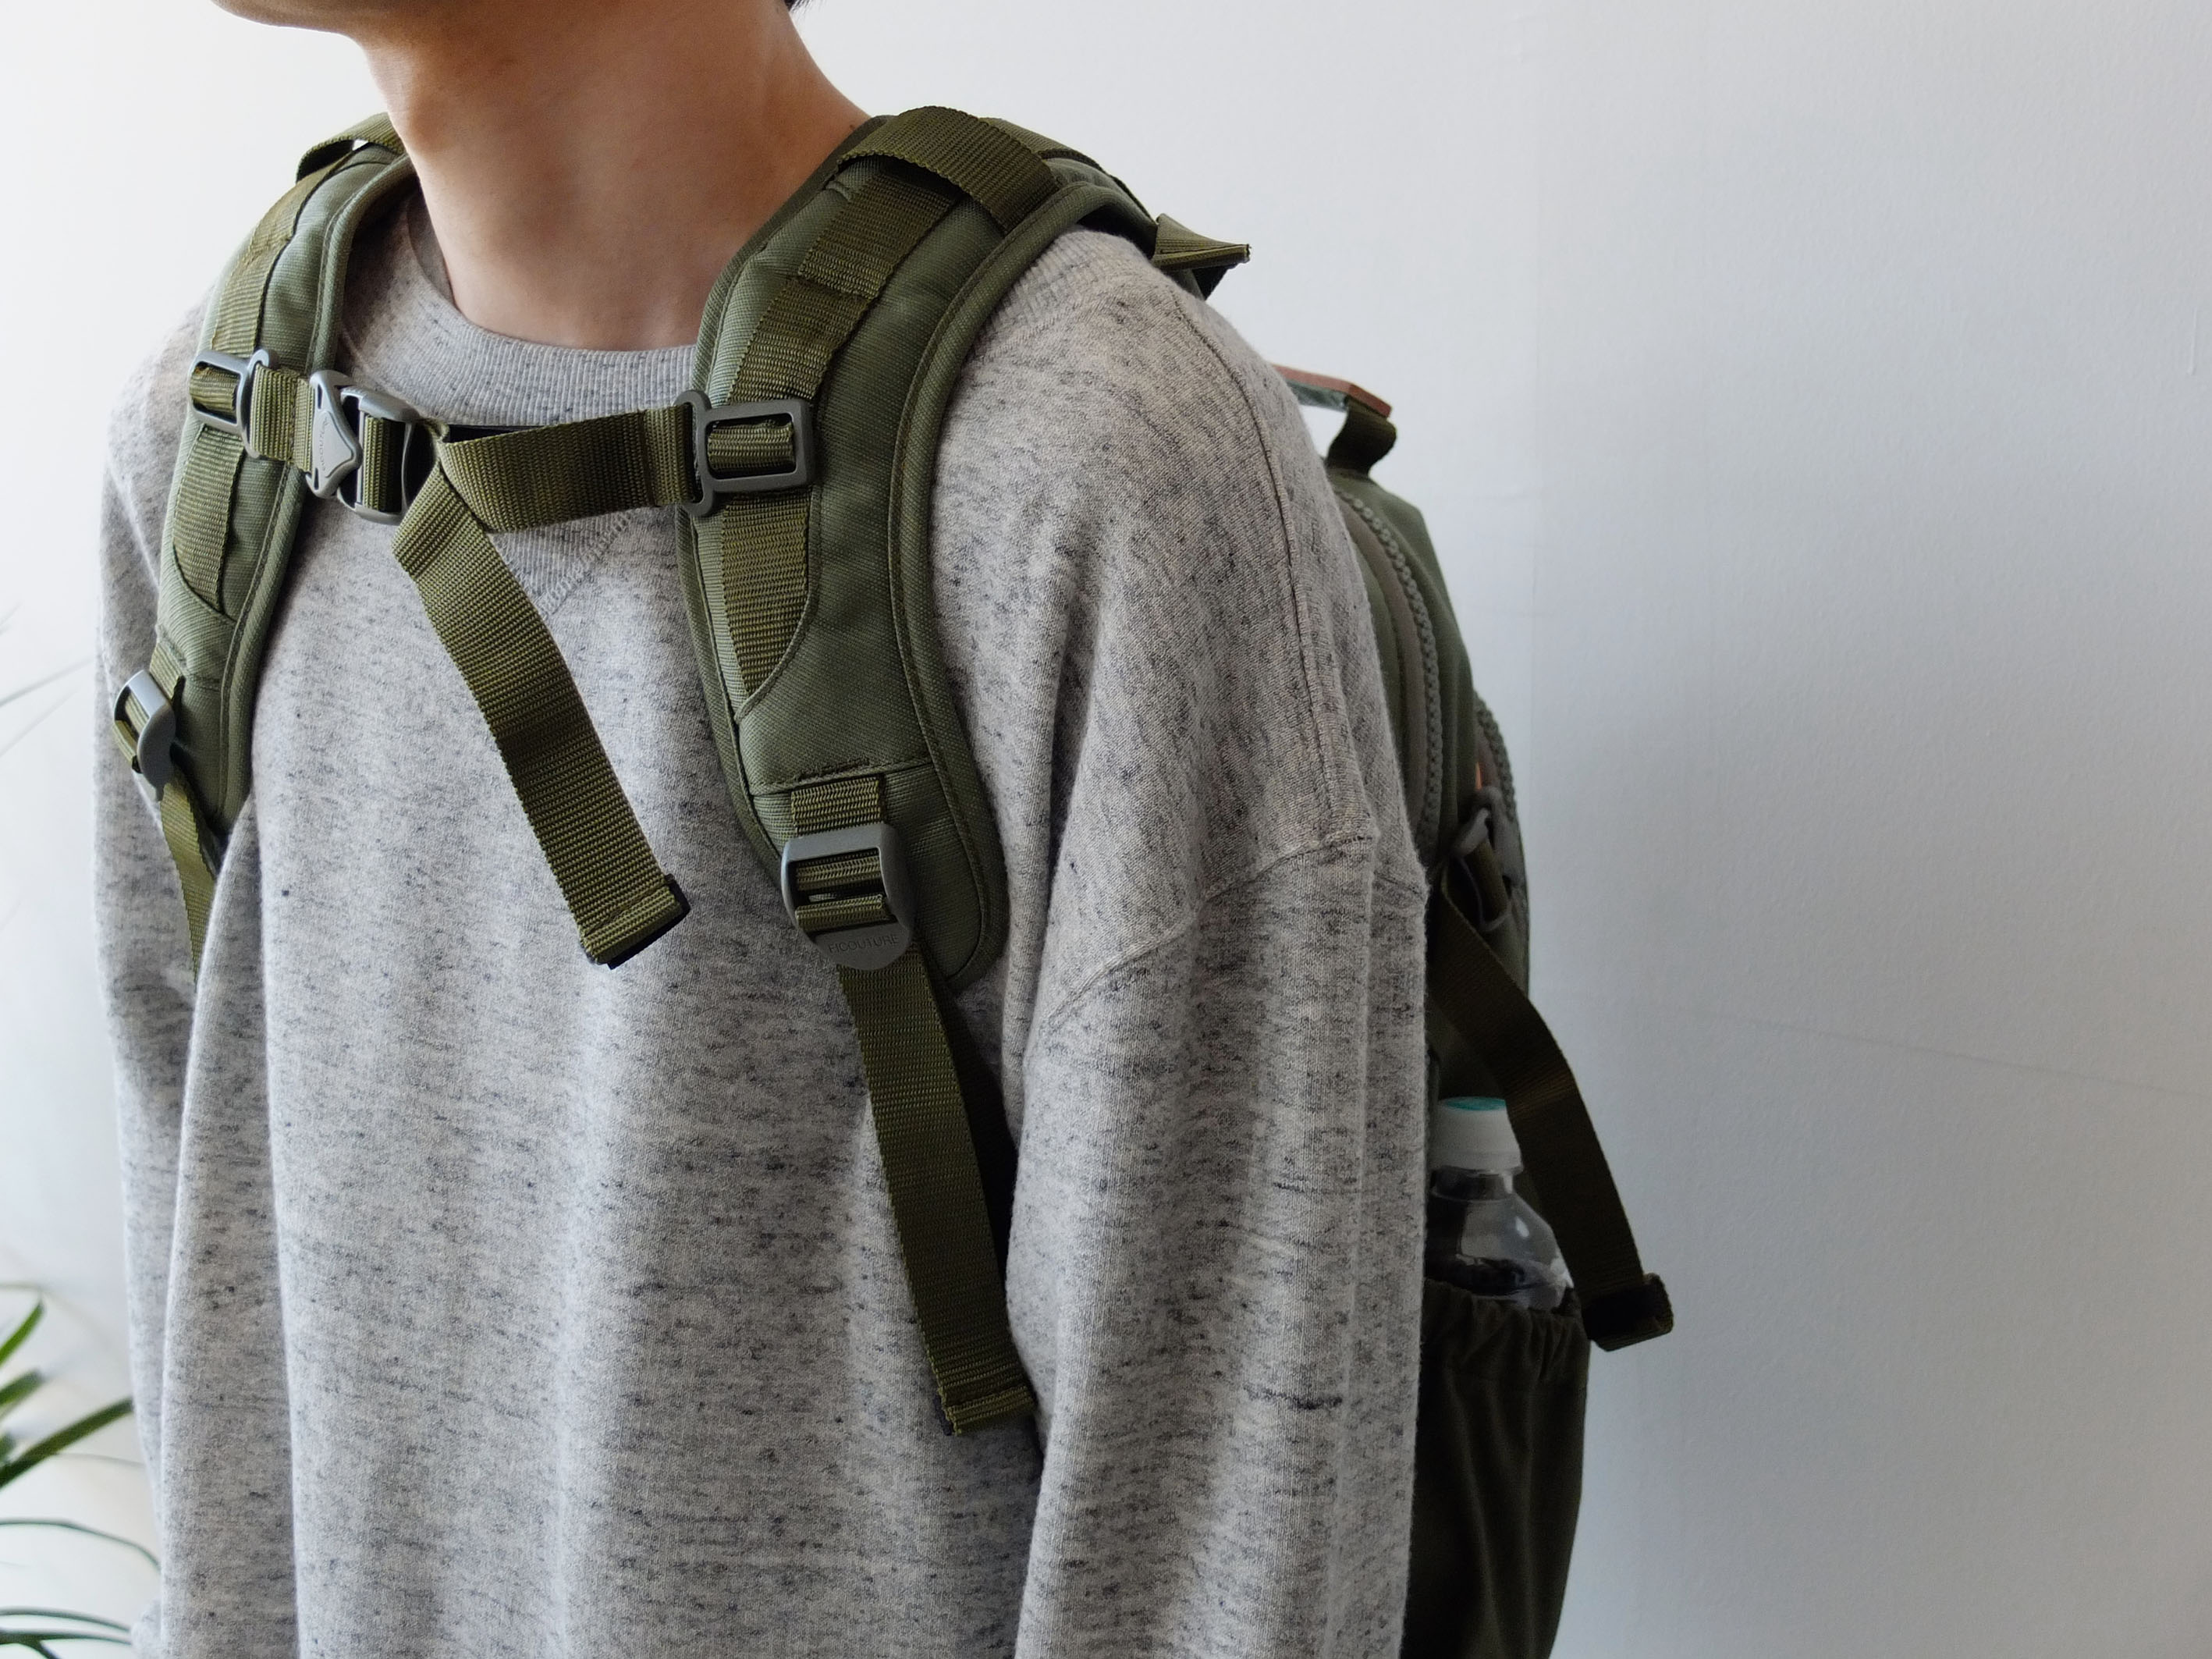 ficouture_backpack_e